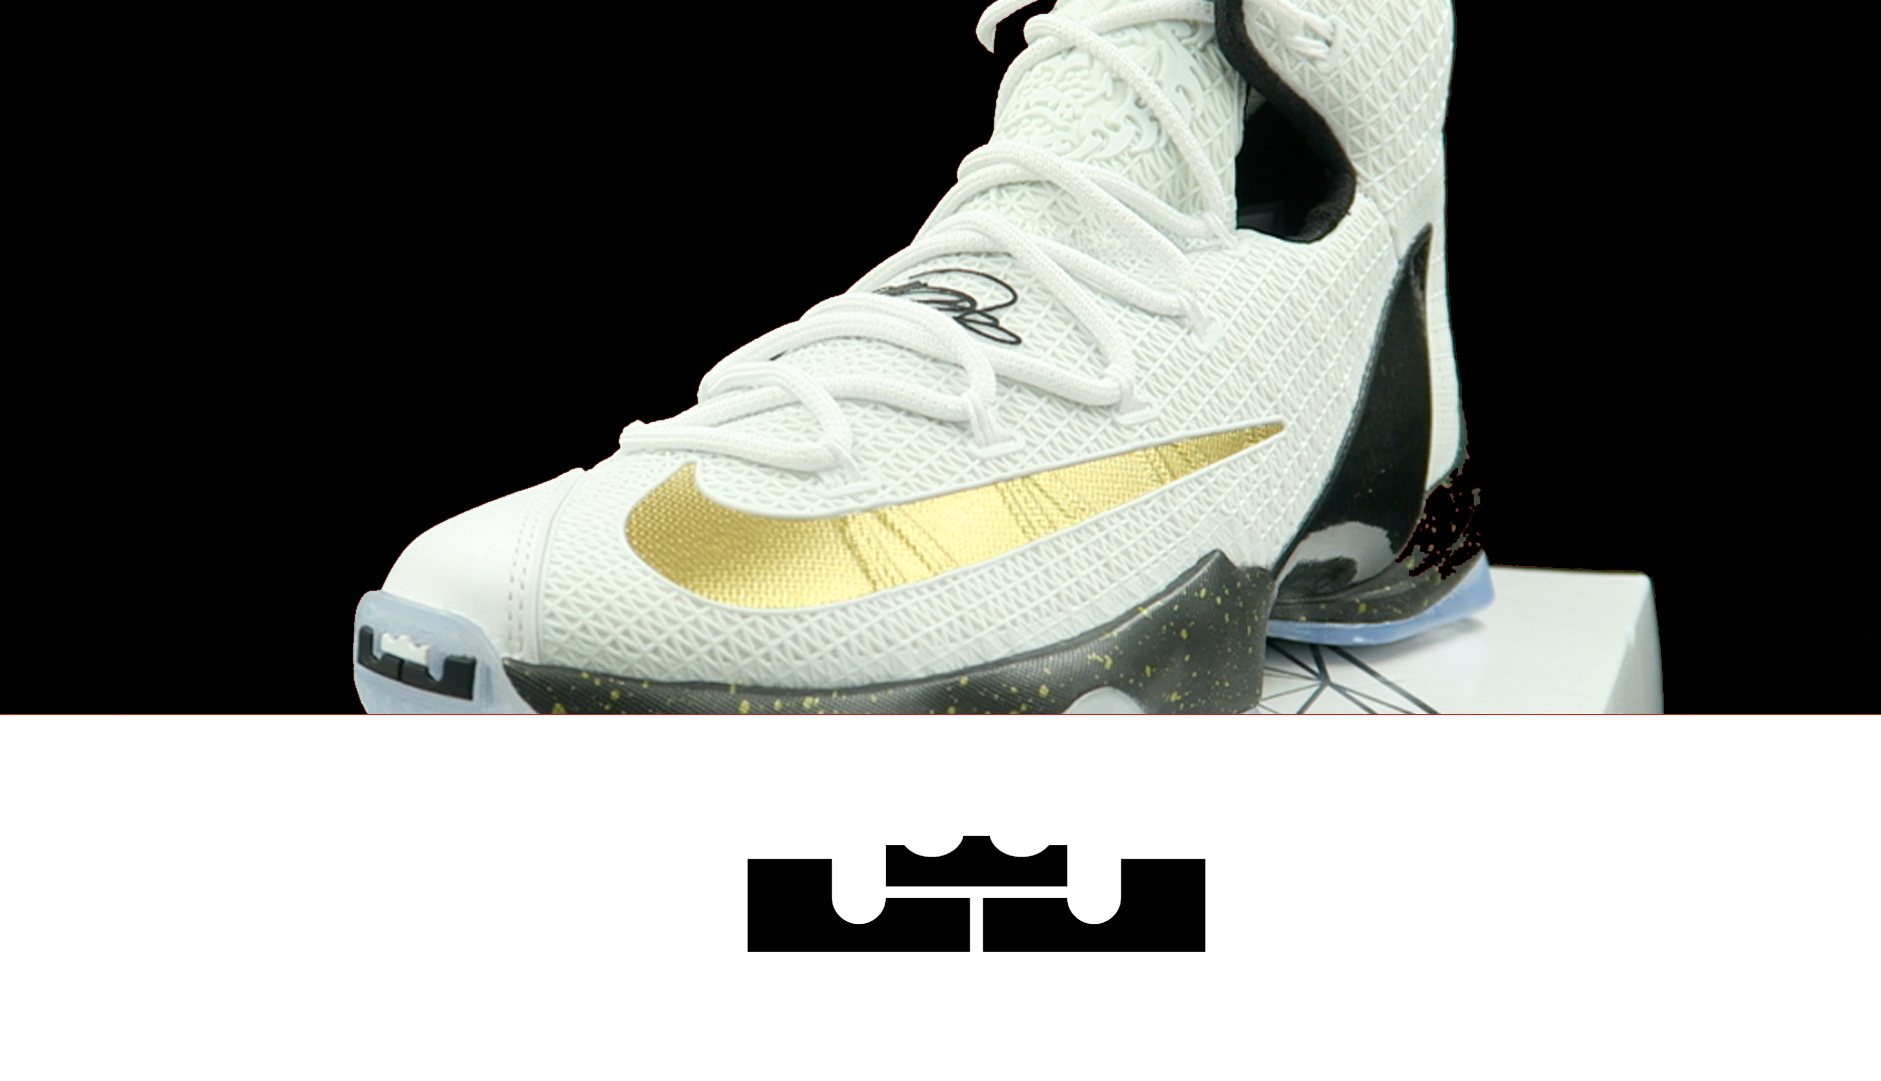 Nike LeBron 13 Elite White: Black – Gold | Detailed Look and Review